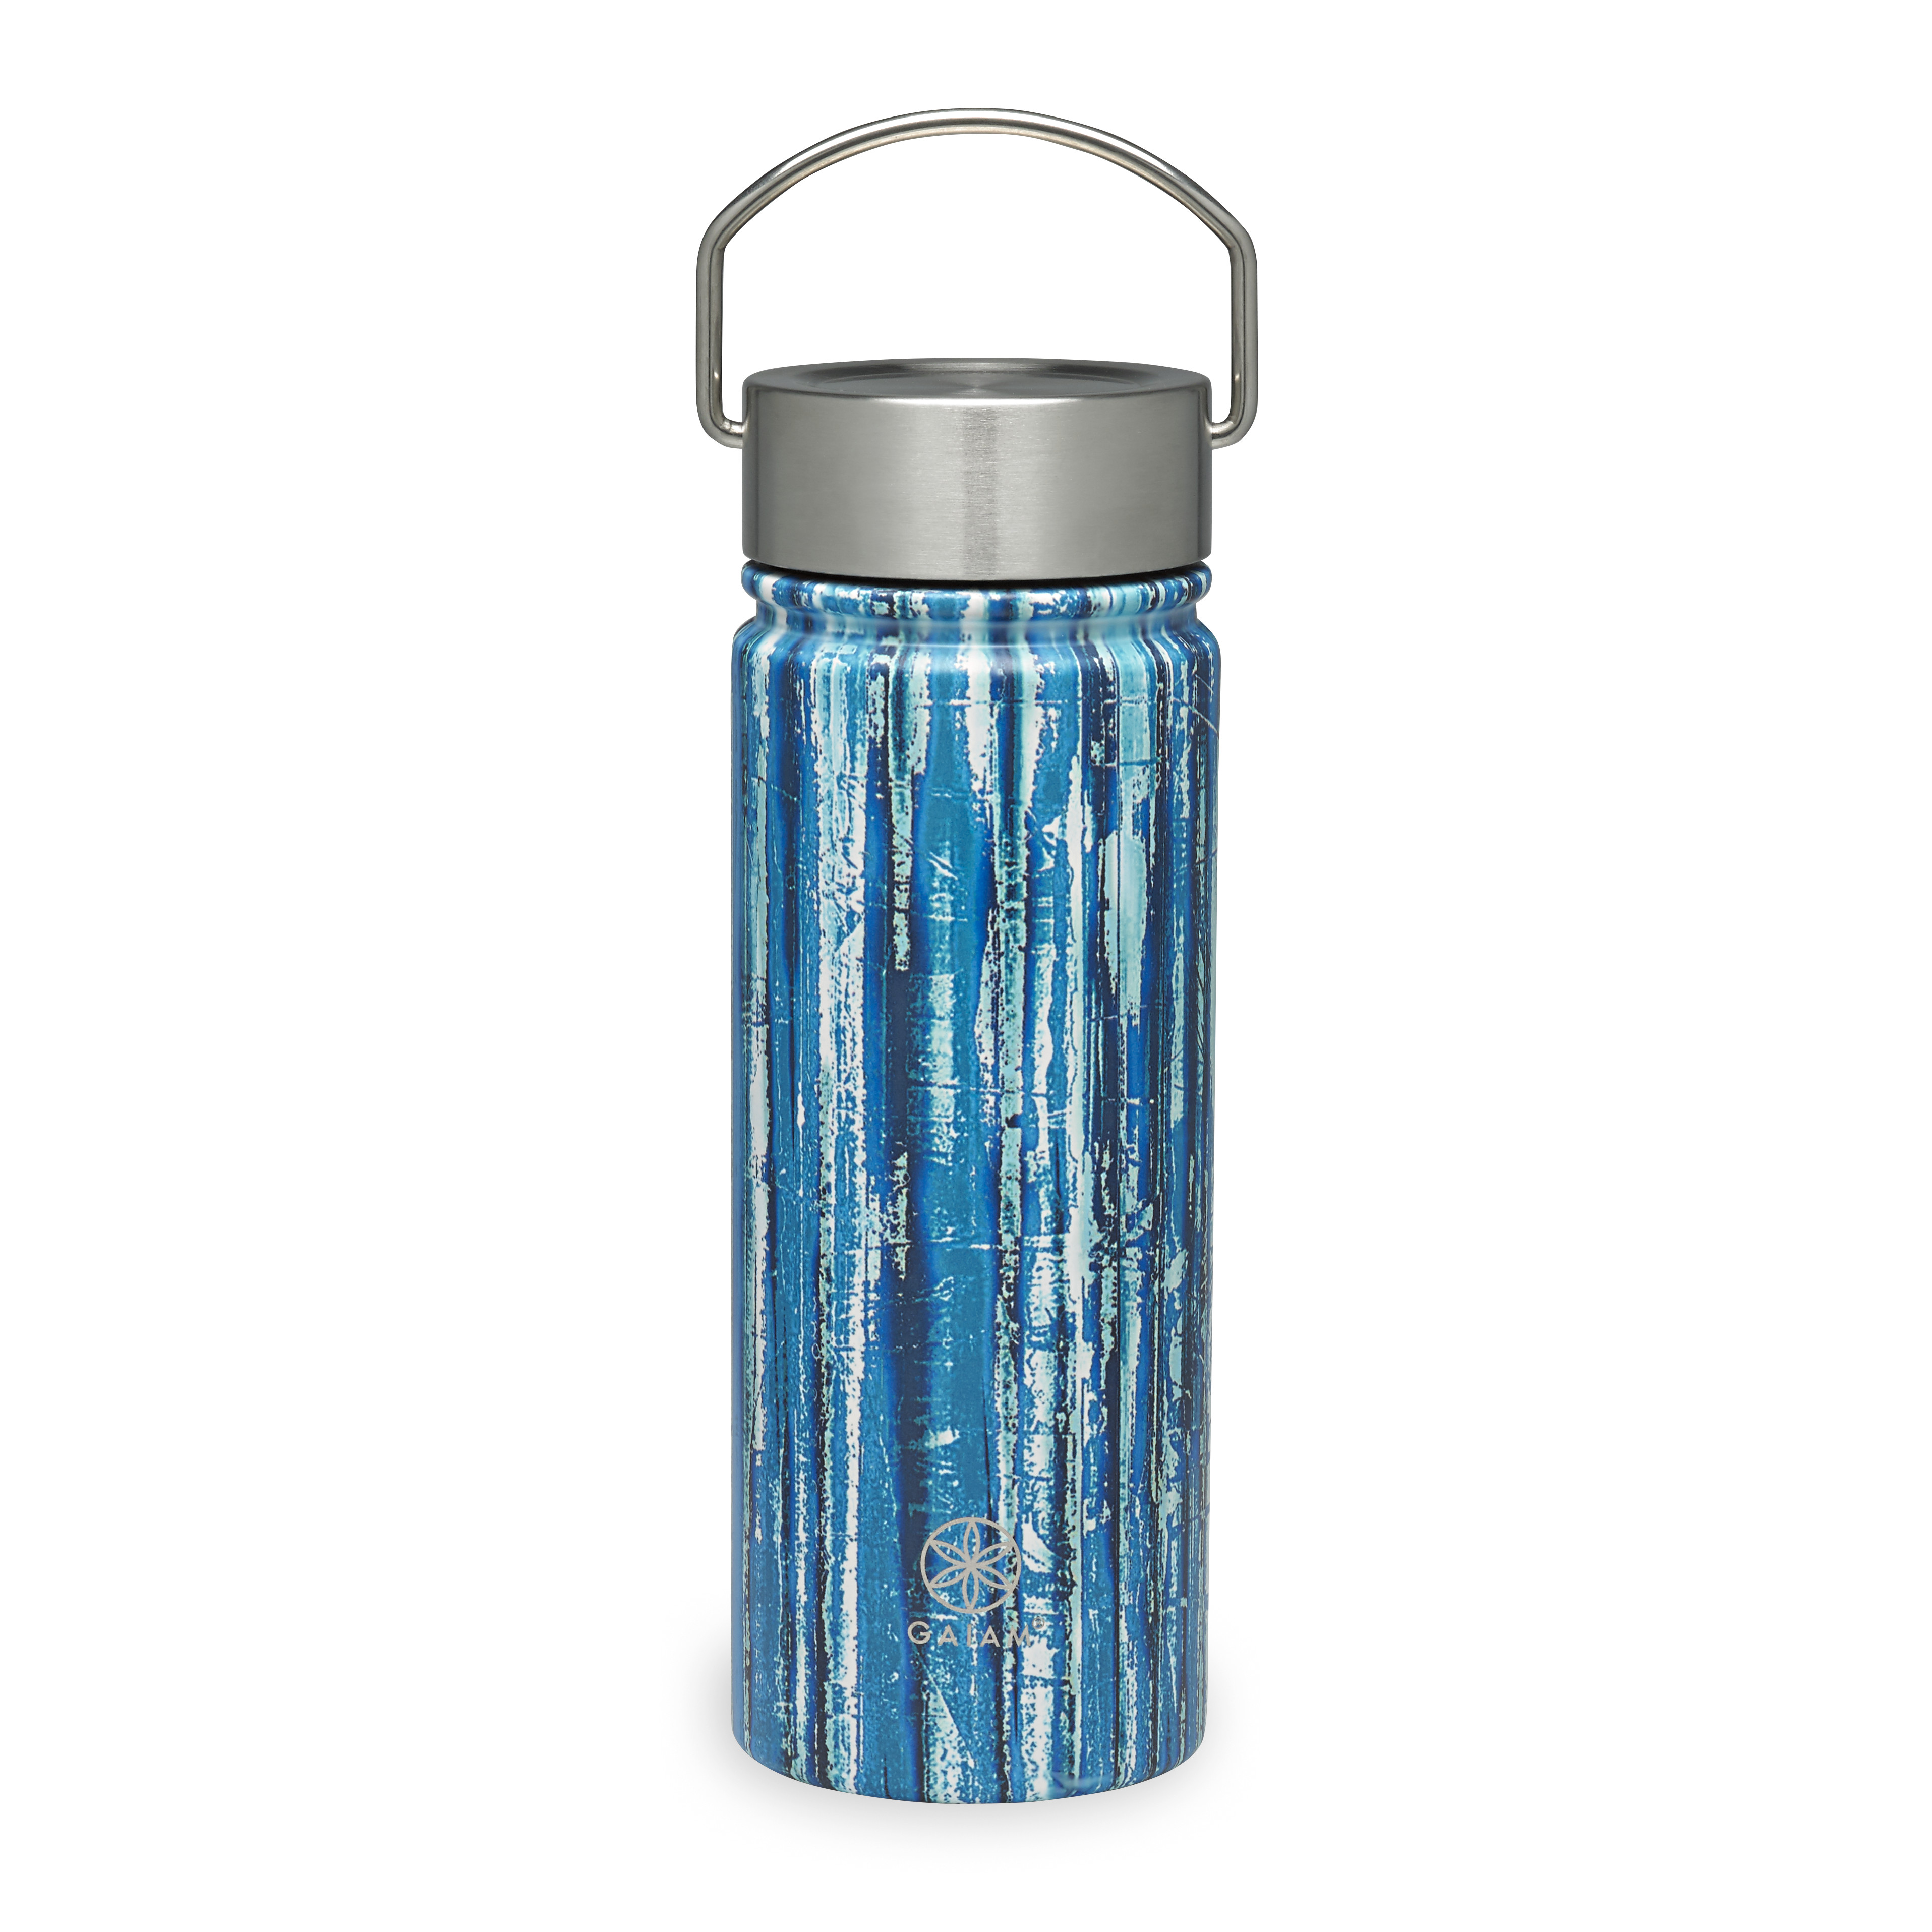 Gaiam Stainless Steel Wide Mouth Water Bottle 18oz Bluegrass